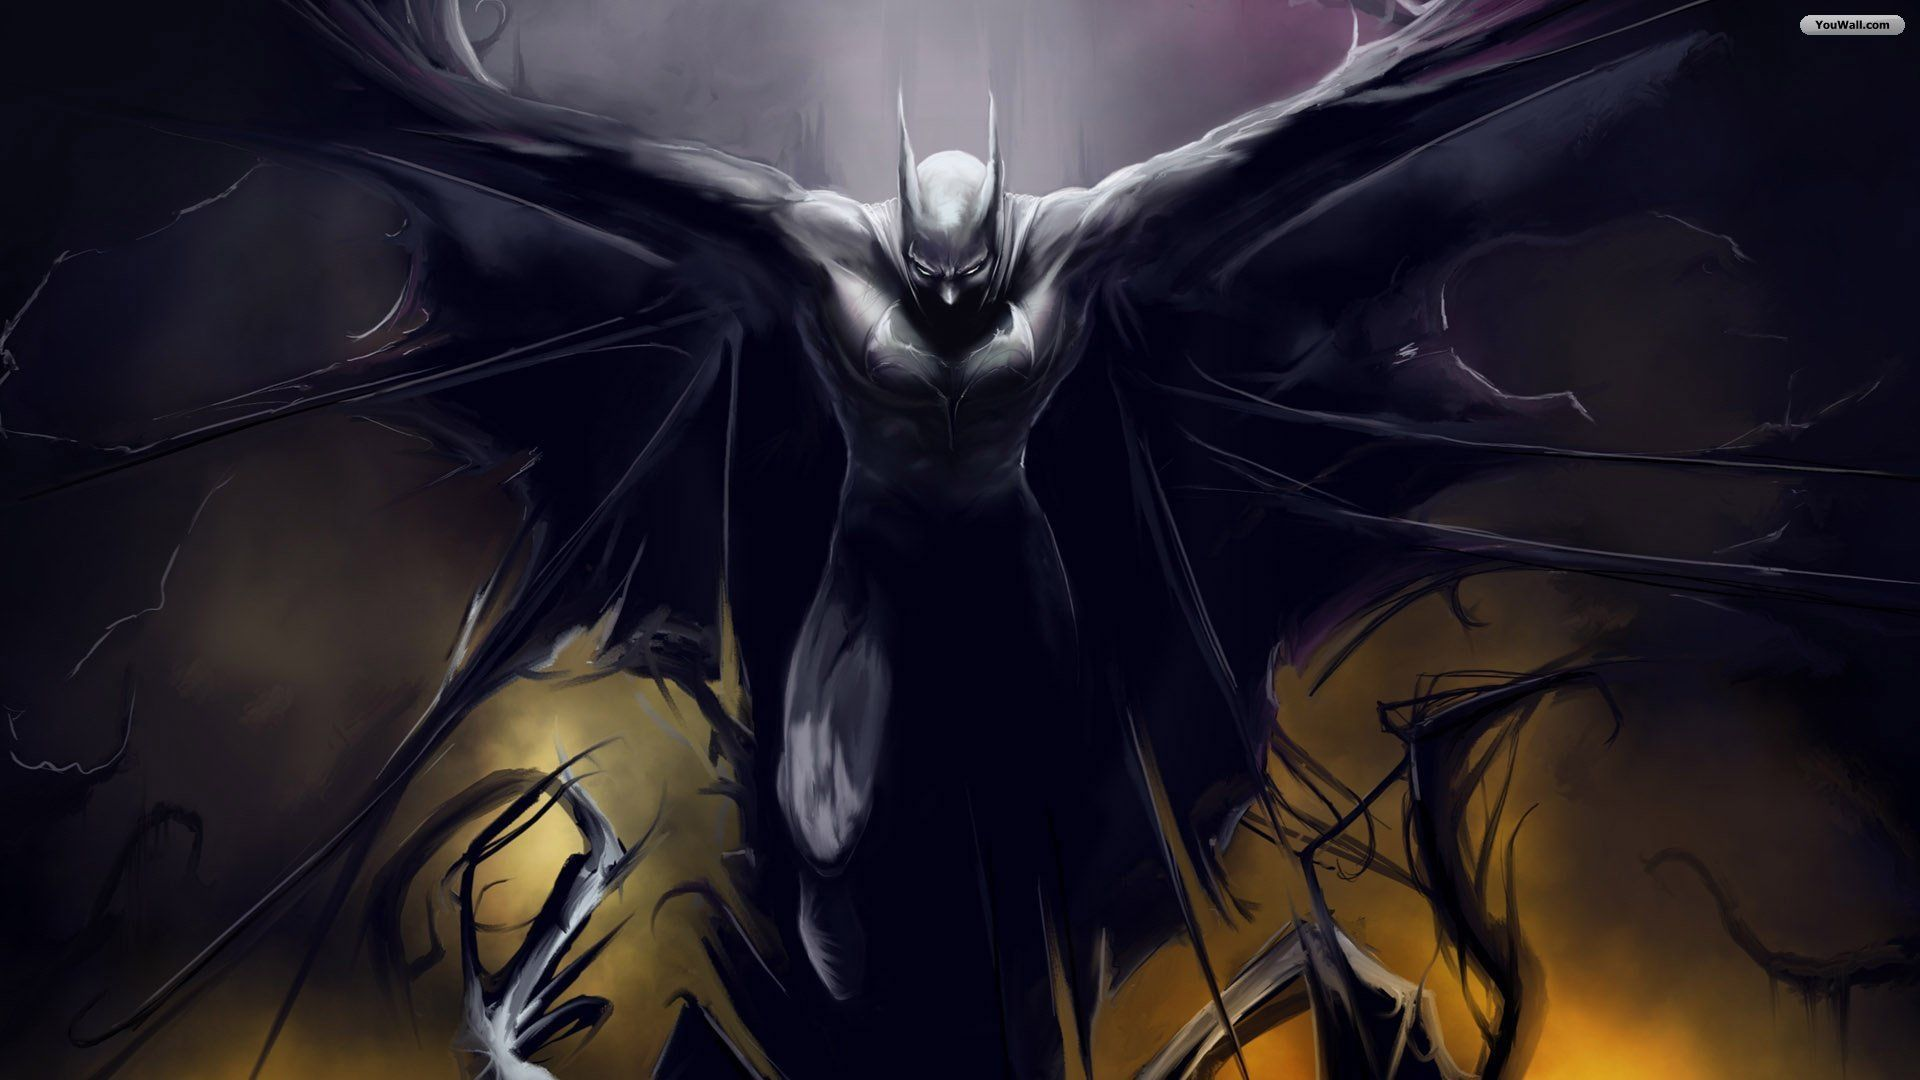 Batman The Animated Series HD Wallpapers Backgrounds 1920x1080